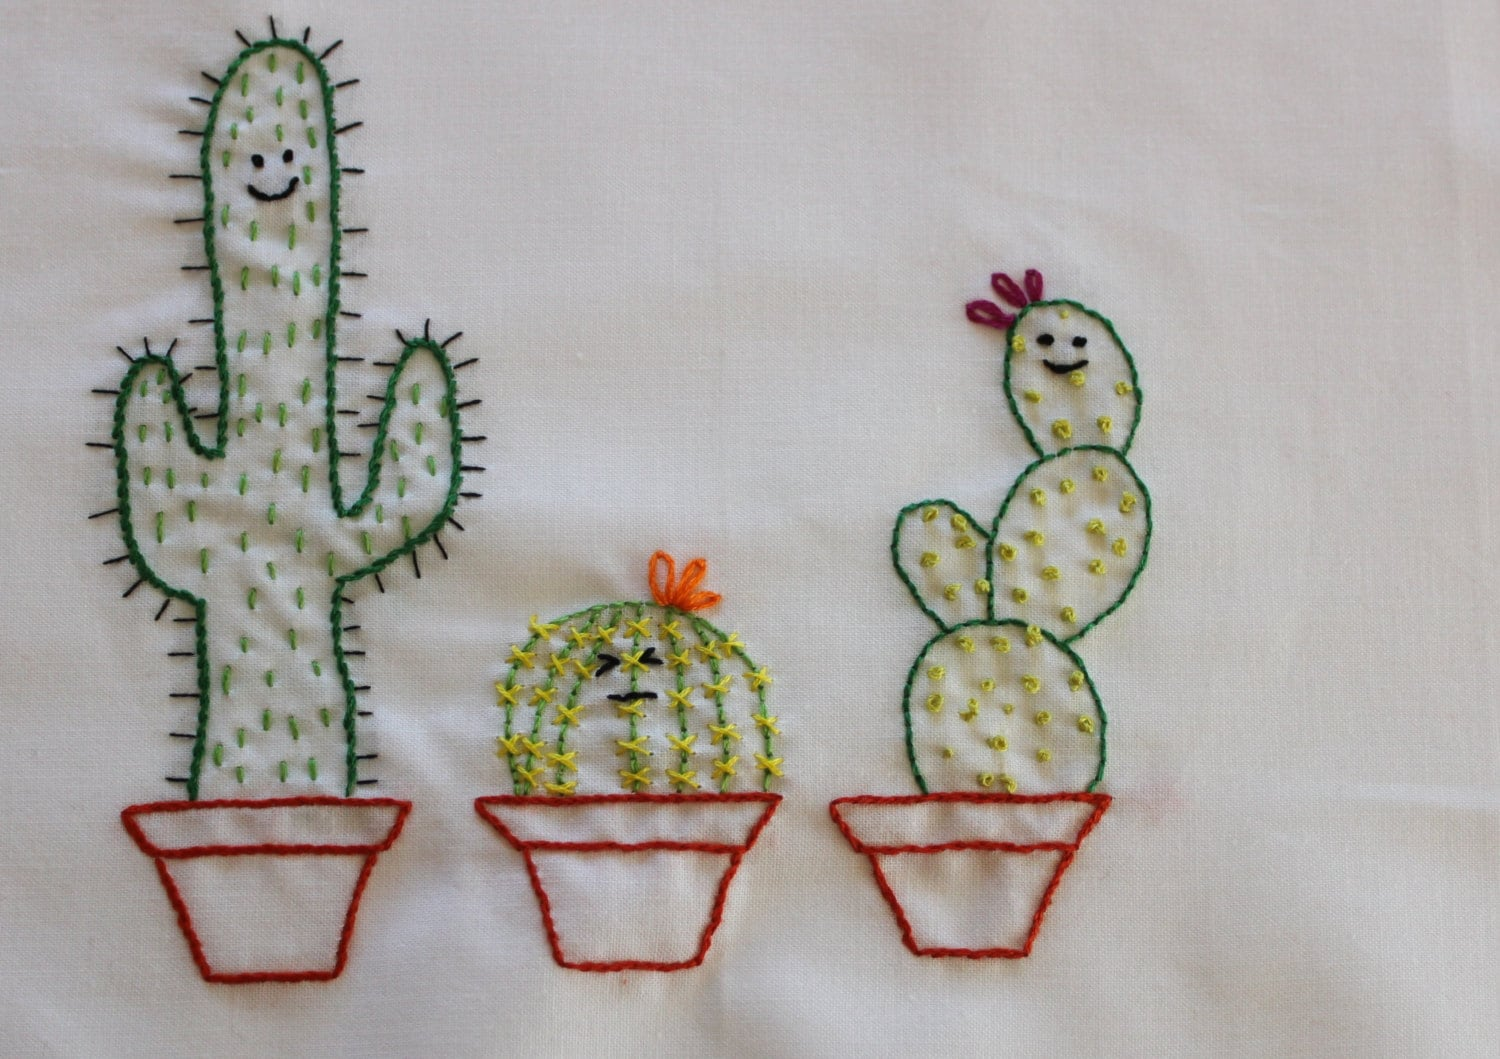 Cute cactus kawaii cacti embroidery pattern from